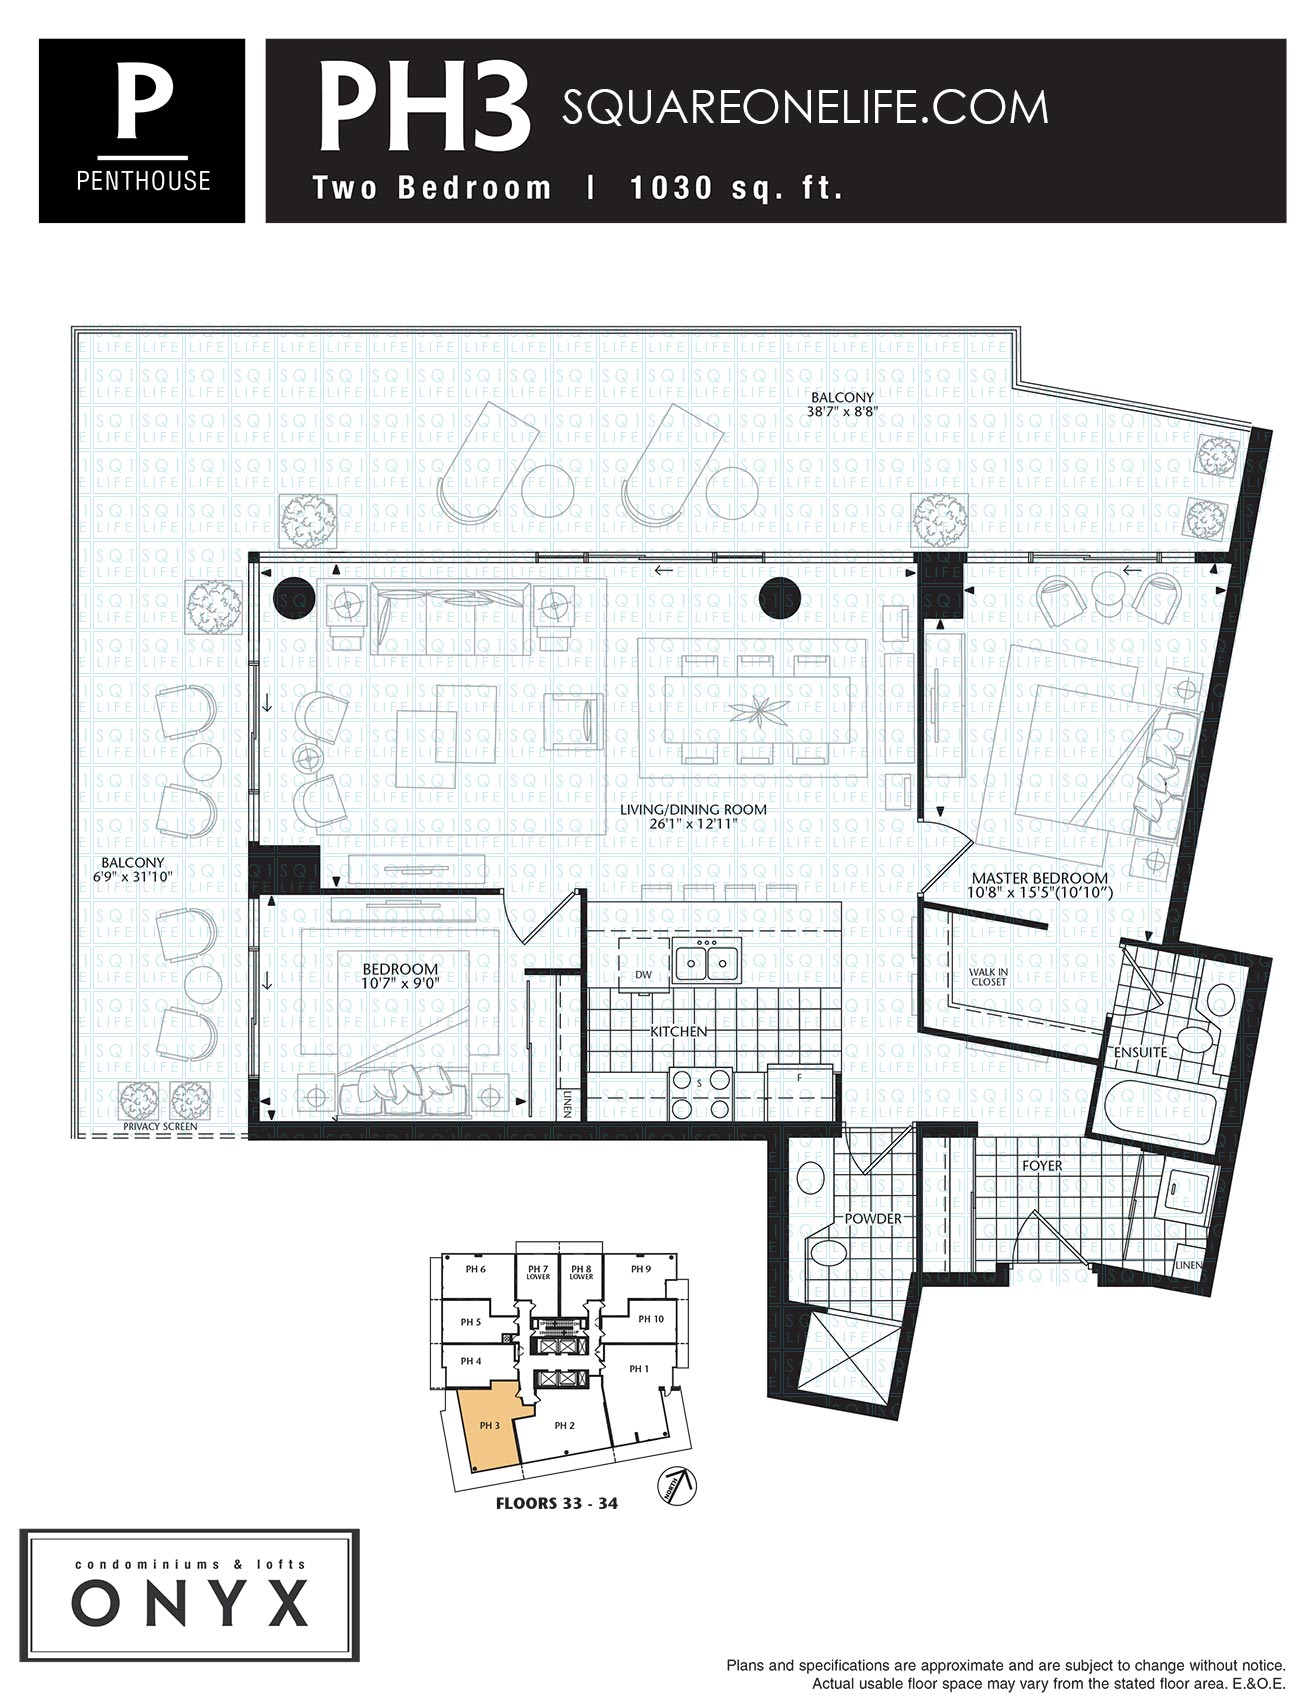 223-Webb-Dr-Onyx-Condo-Floorplan-PH3-2-Bed onyx condo Onyx Condo 223 Webb Dr Onyx Condo Floorplan PH3 2 Bed